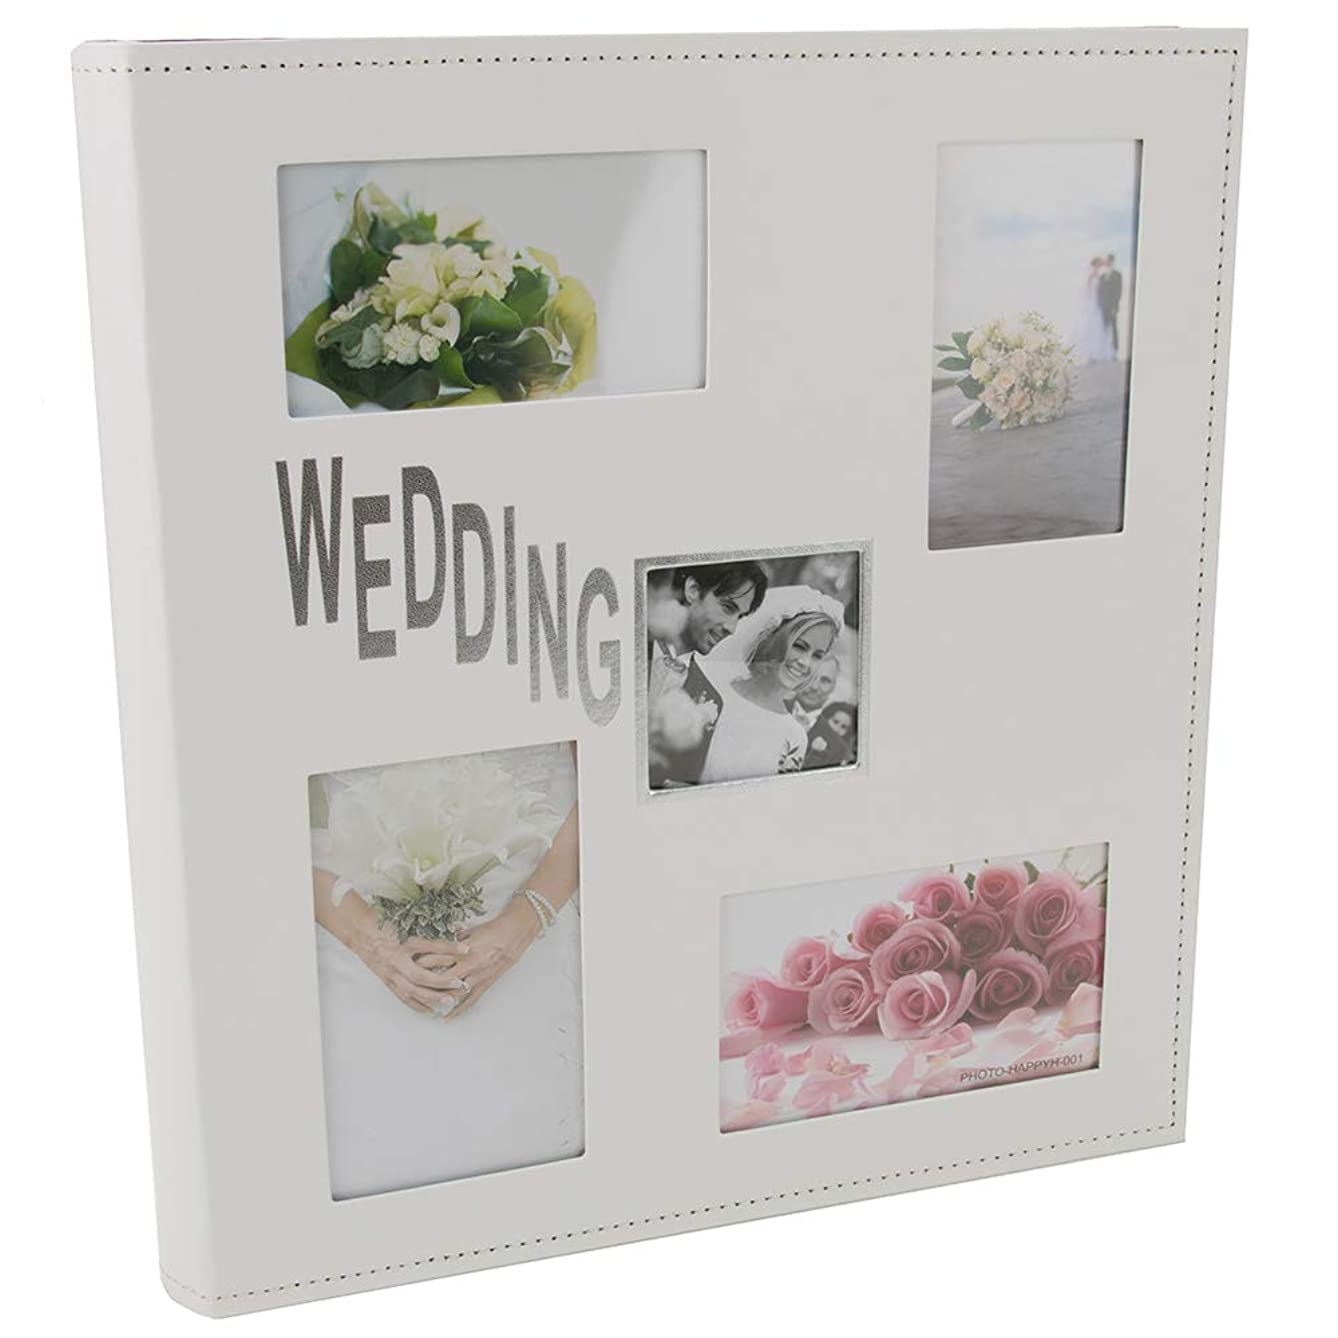 Happy Homewares Large White Faux Leather Wedding Photo Album with Stitching Decoration and Silver Foil Text Holding 200 4x6 and 6x4 Pictures